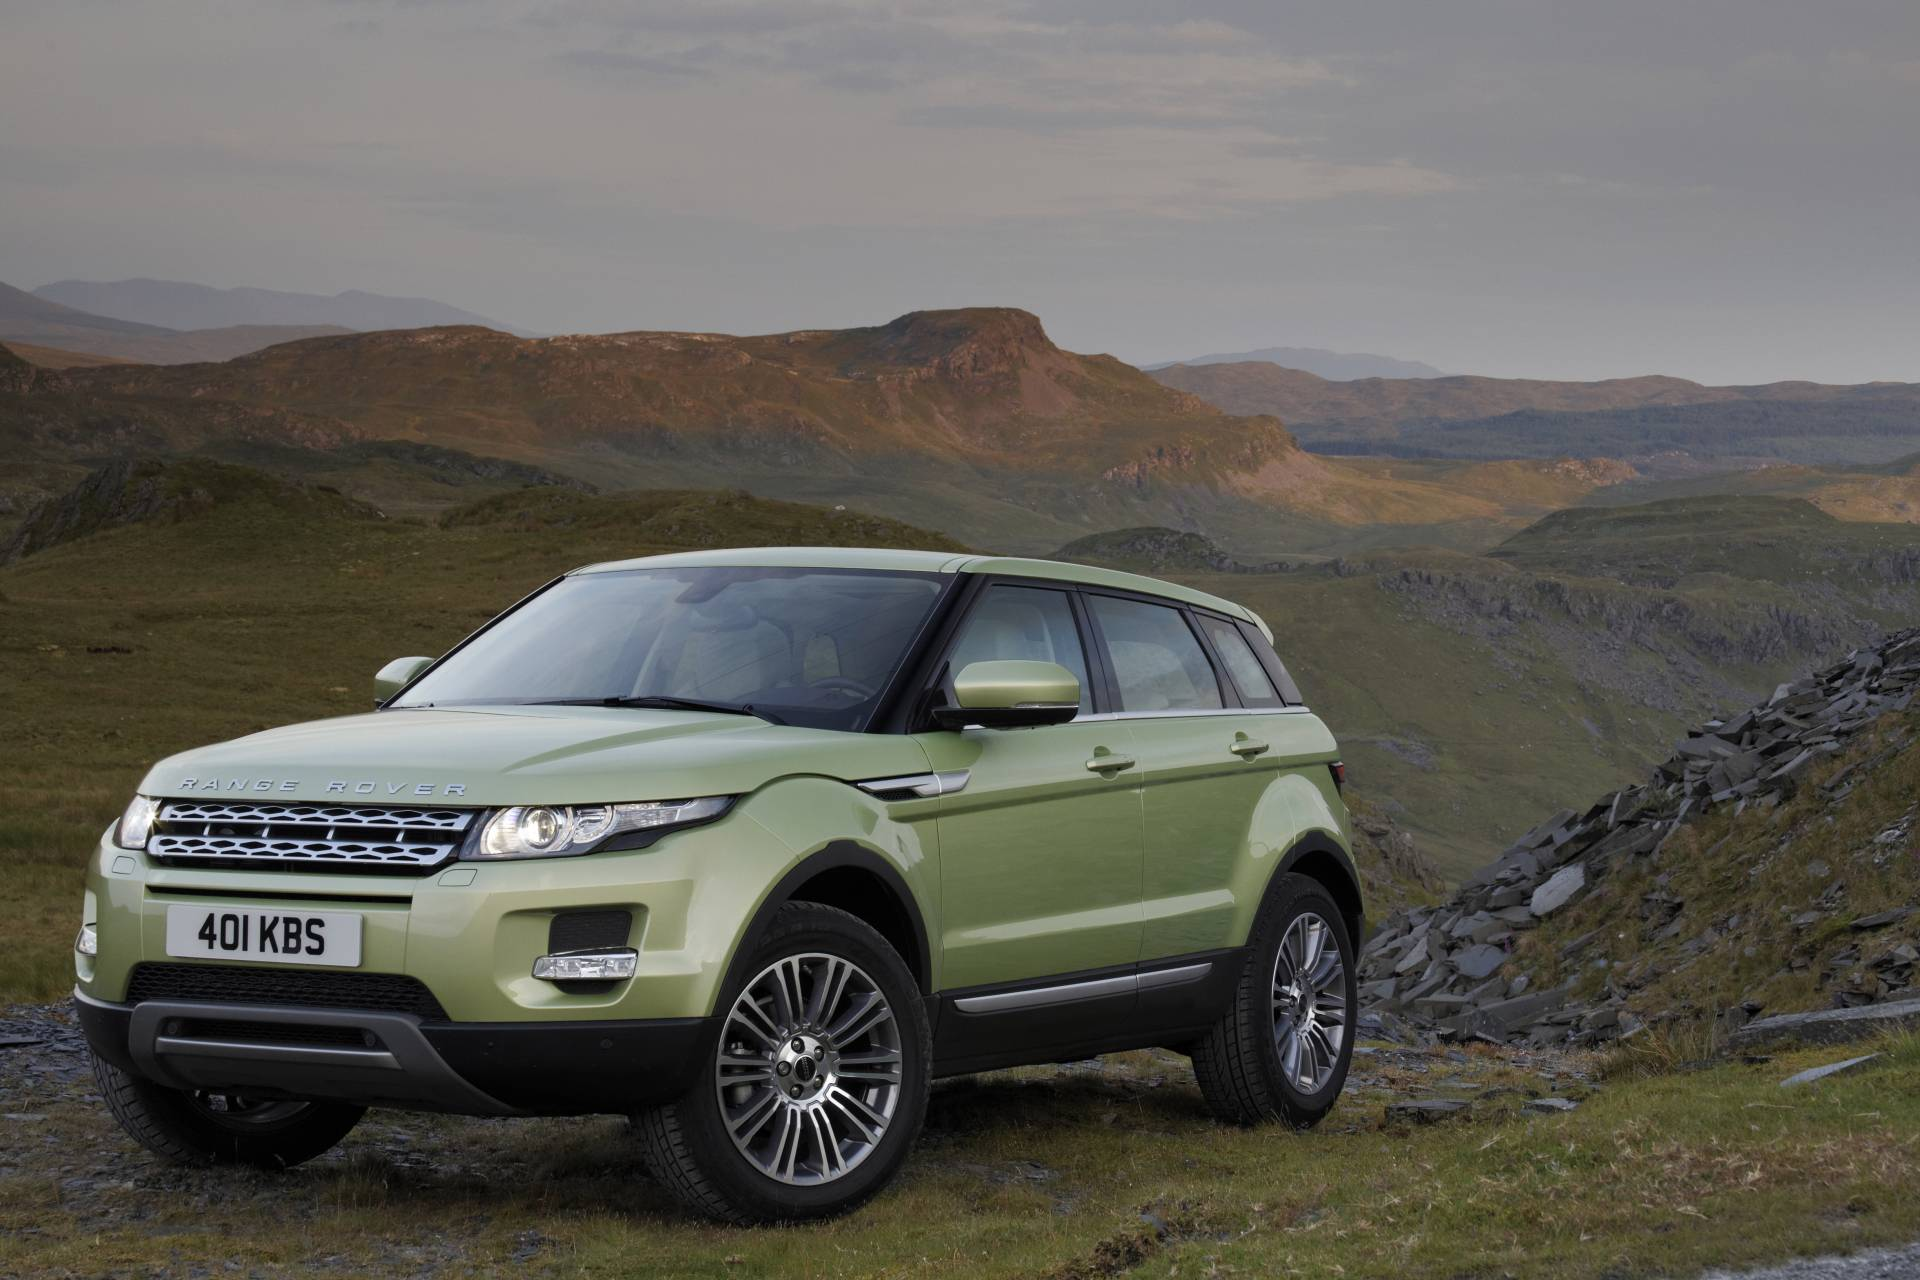 2012 land rover range rover evoque technical. Black Bedroom Furniture Sets. Home Design Ideas